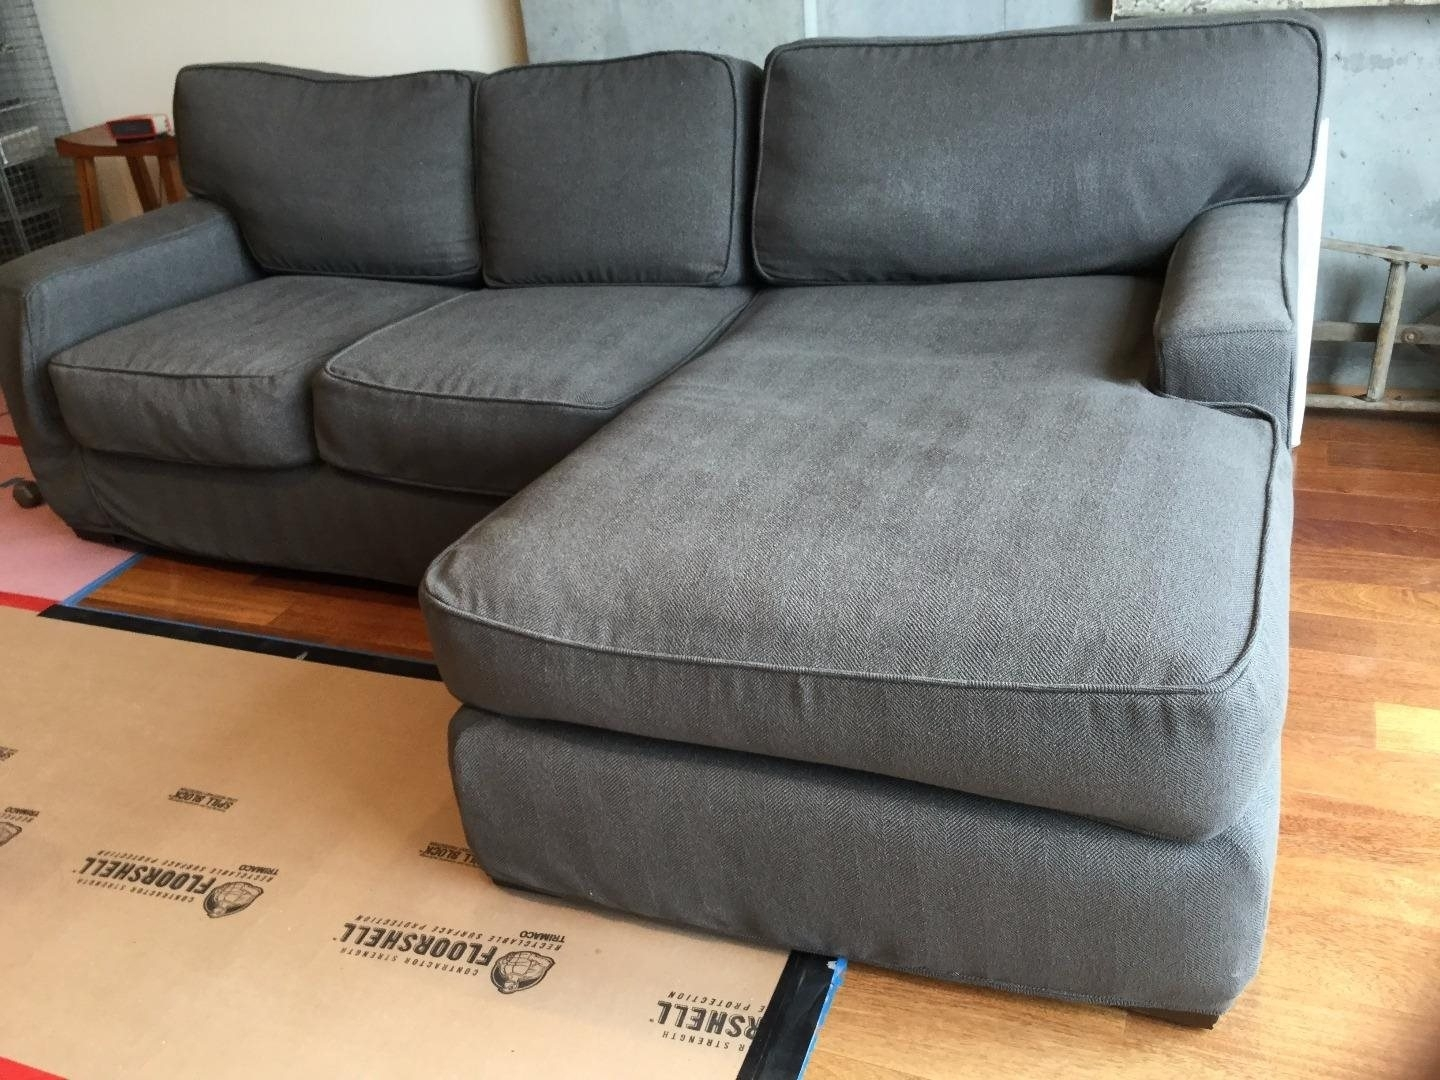 Quatrine Upholstered Sectional Sofa: For Sale In San Francisco, Ca for Quatrine Sectional Sofas